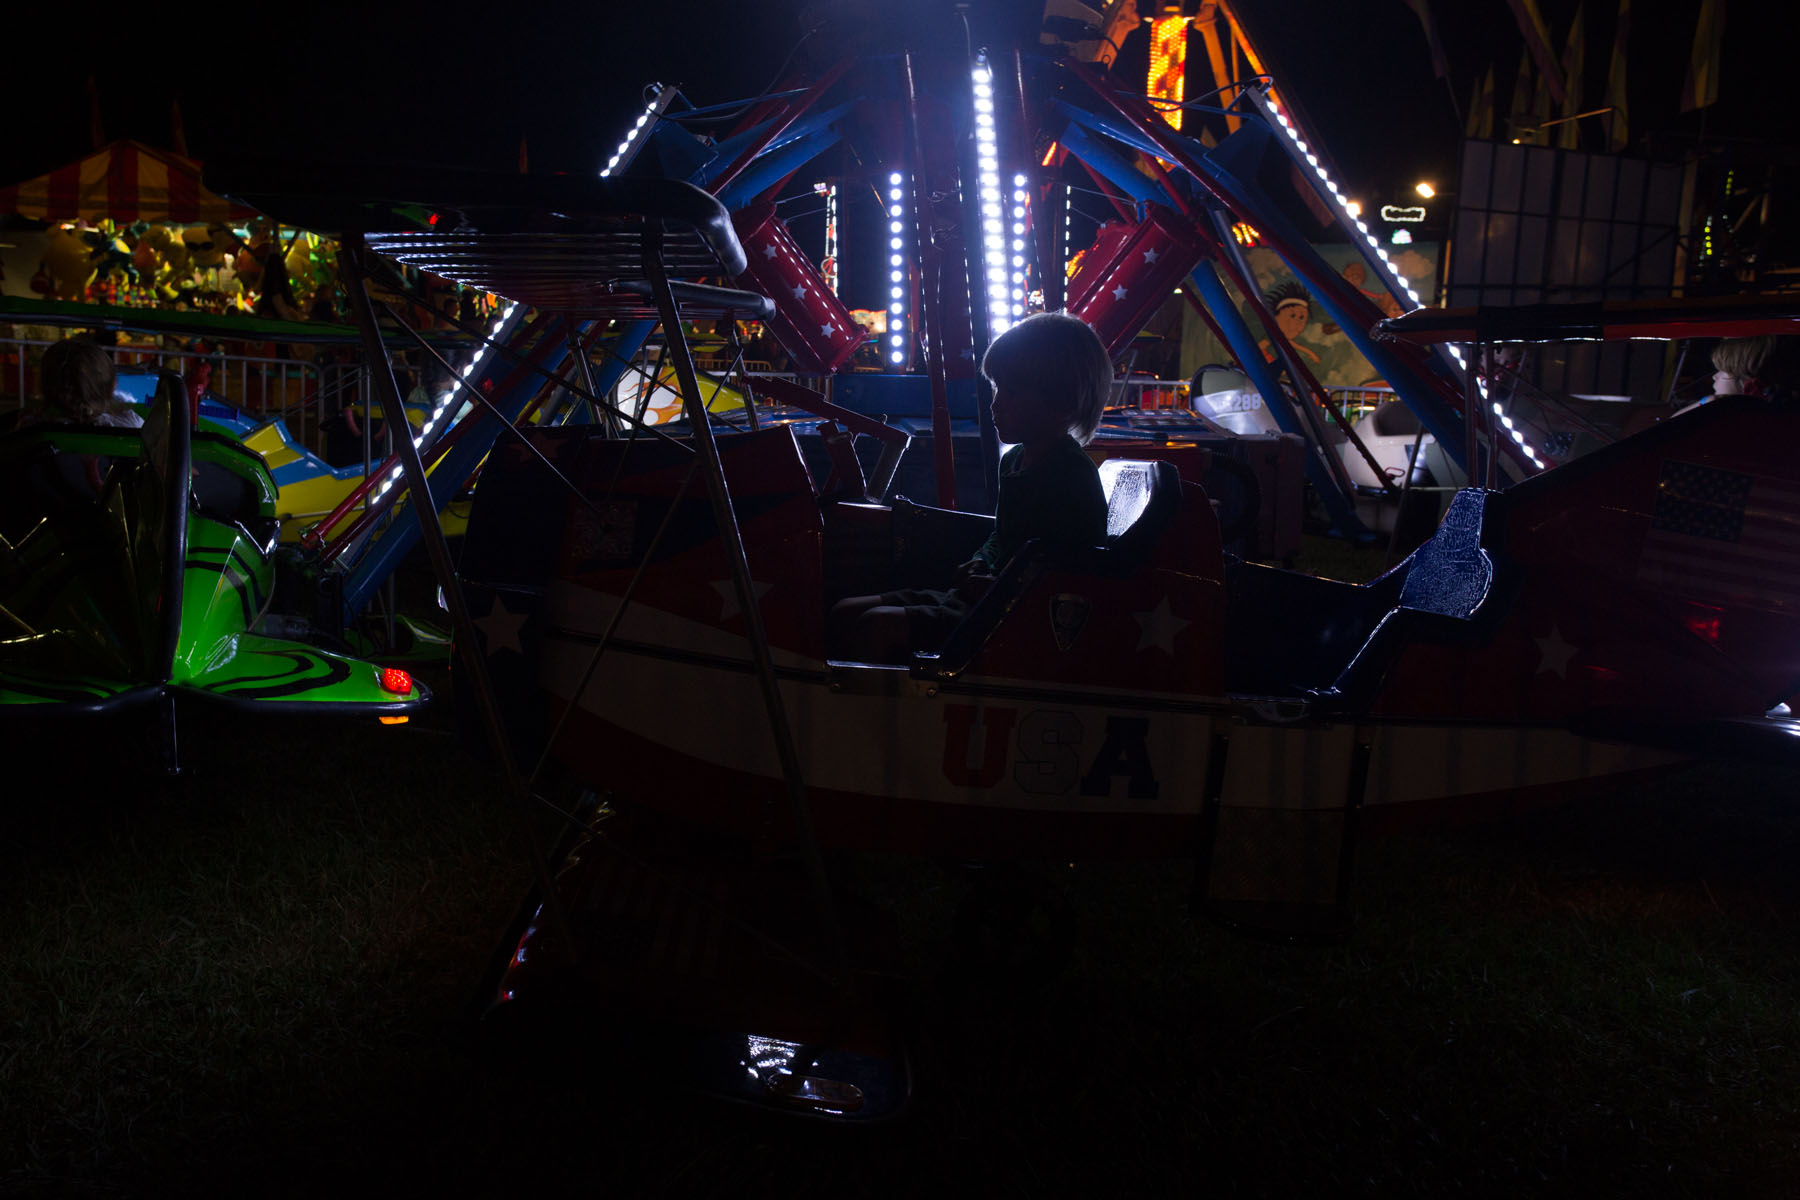 elbert county fair-201510085386.jpg